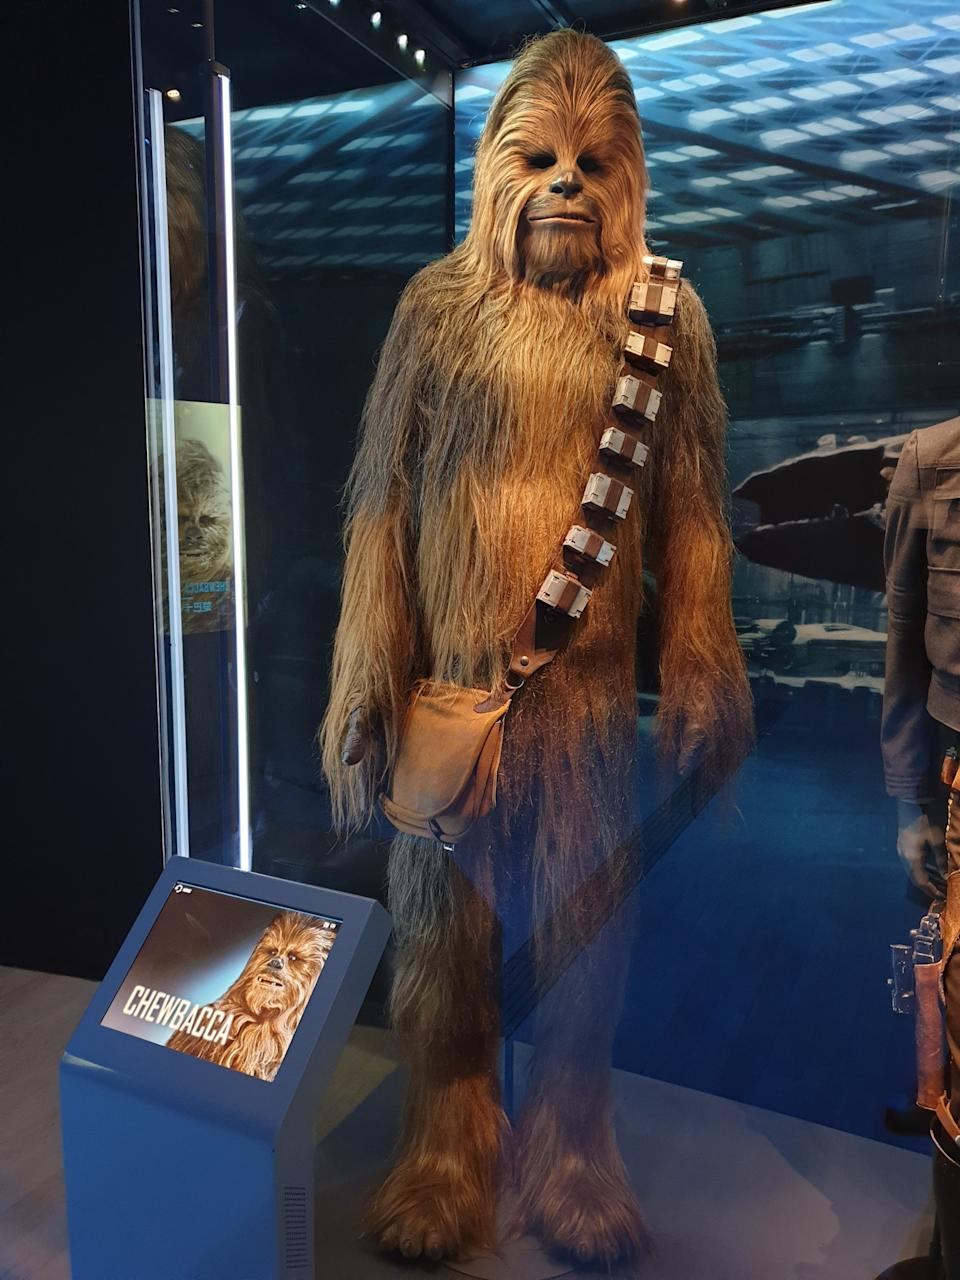 Wookiee costume worn by Peter Mayhew at the Star Wars Identities exhibition in Singapore at the Artscience Museum. (Photo: Teng Yong Ping)